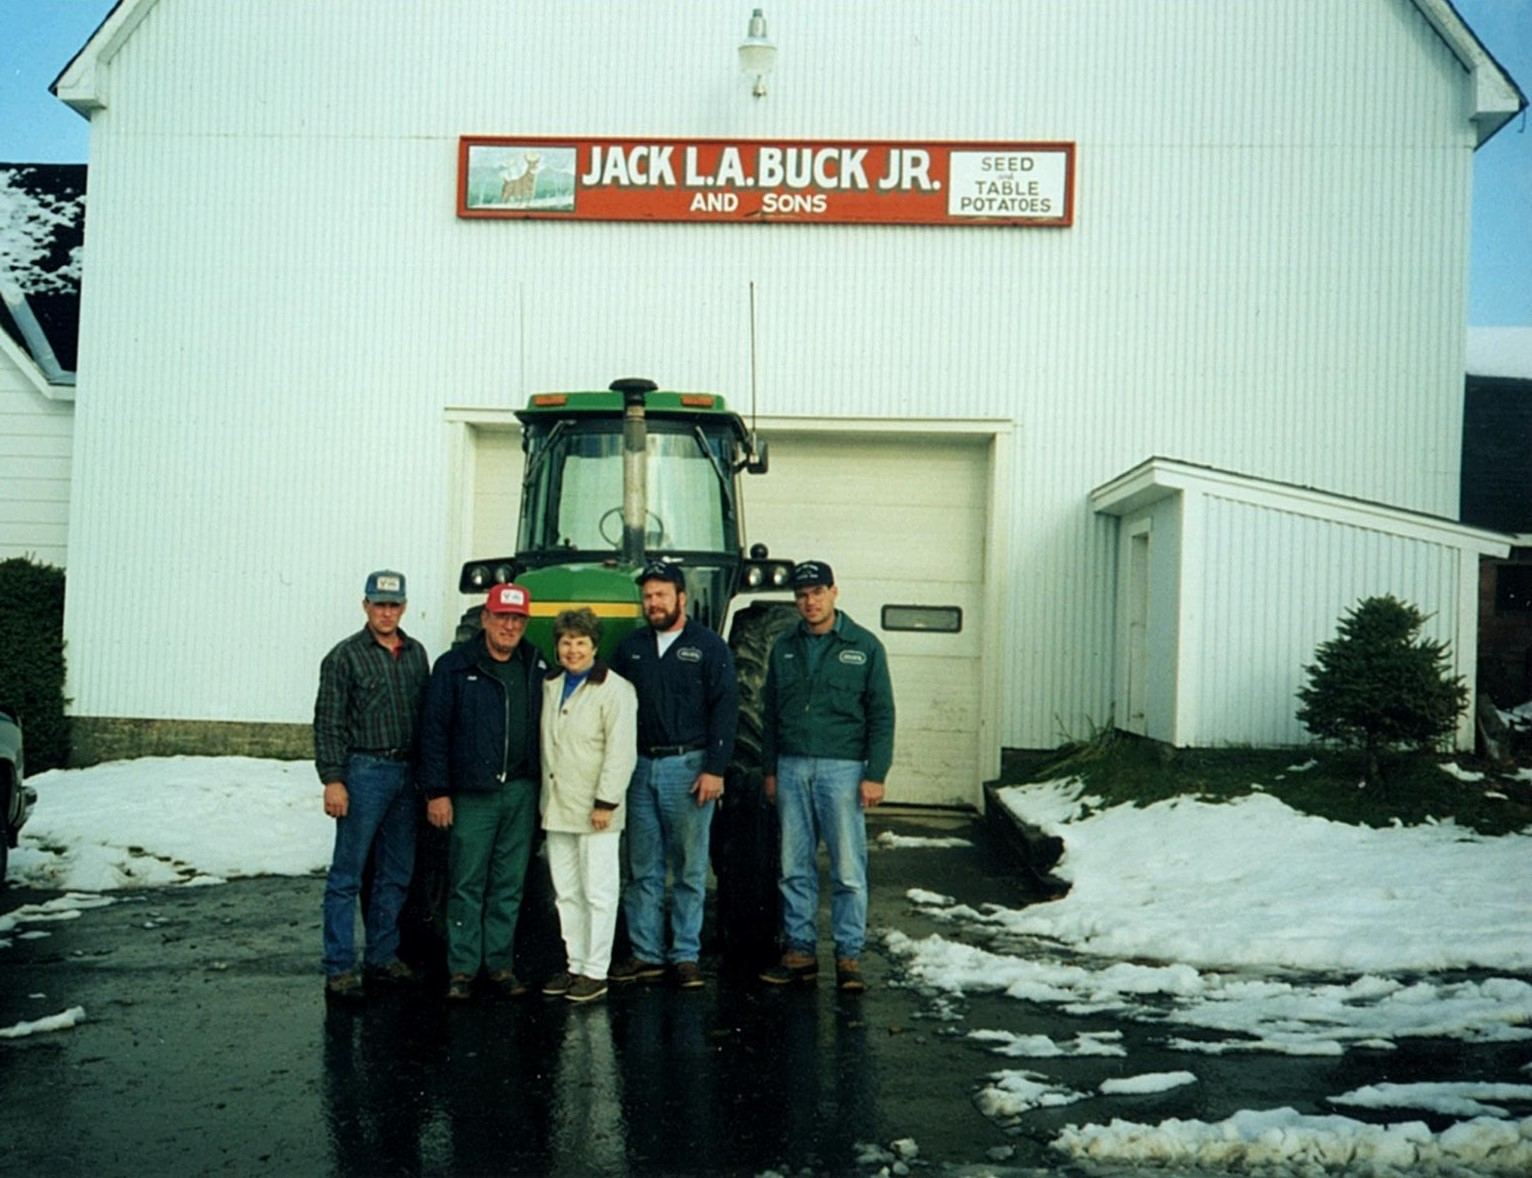 Jack L.A. Buck Jr. and Sons